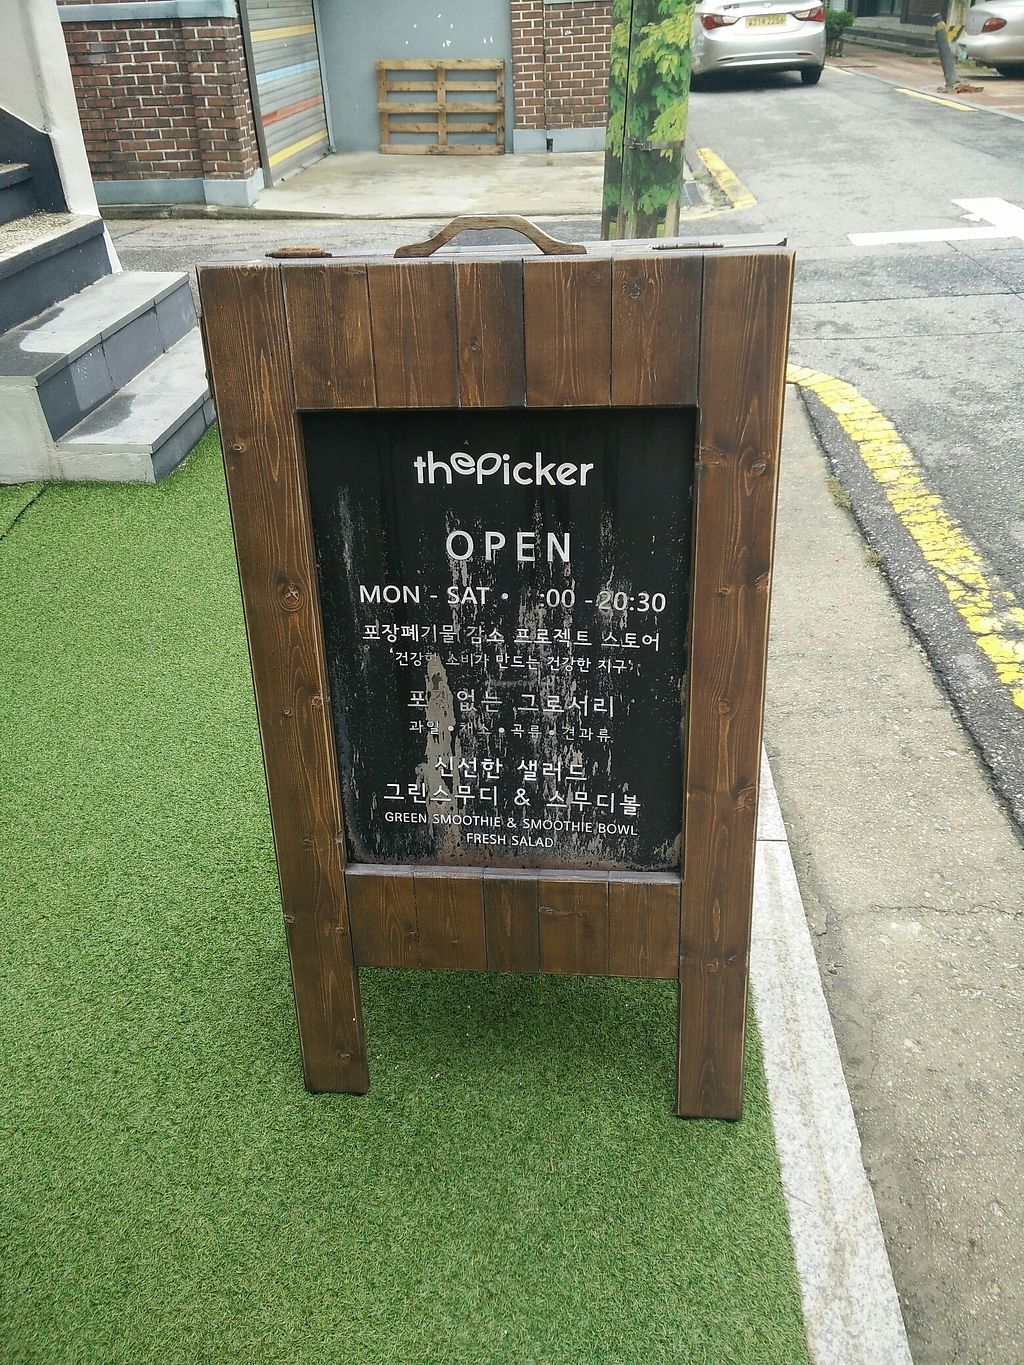 """Photo of The Picker - 더 피커  by <a href=""""/members/profile/KohJitWoon"""">KohJitWoon</a> <br/>opening hours <br/> July 23, 2017  - <a href='/contact/abuse/image/82594/283613'>Report</a>"""